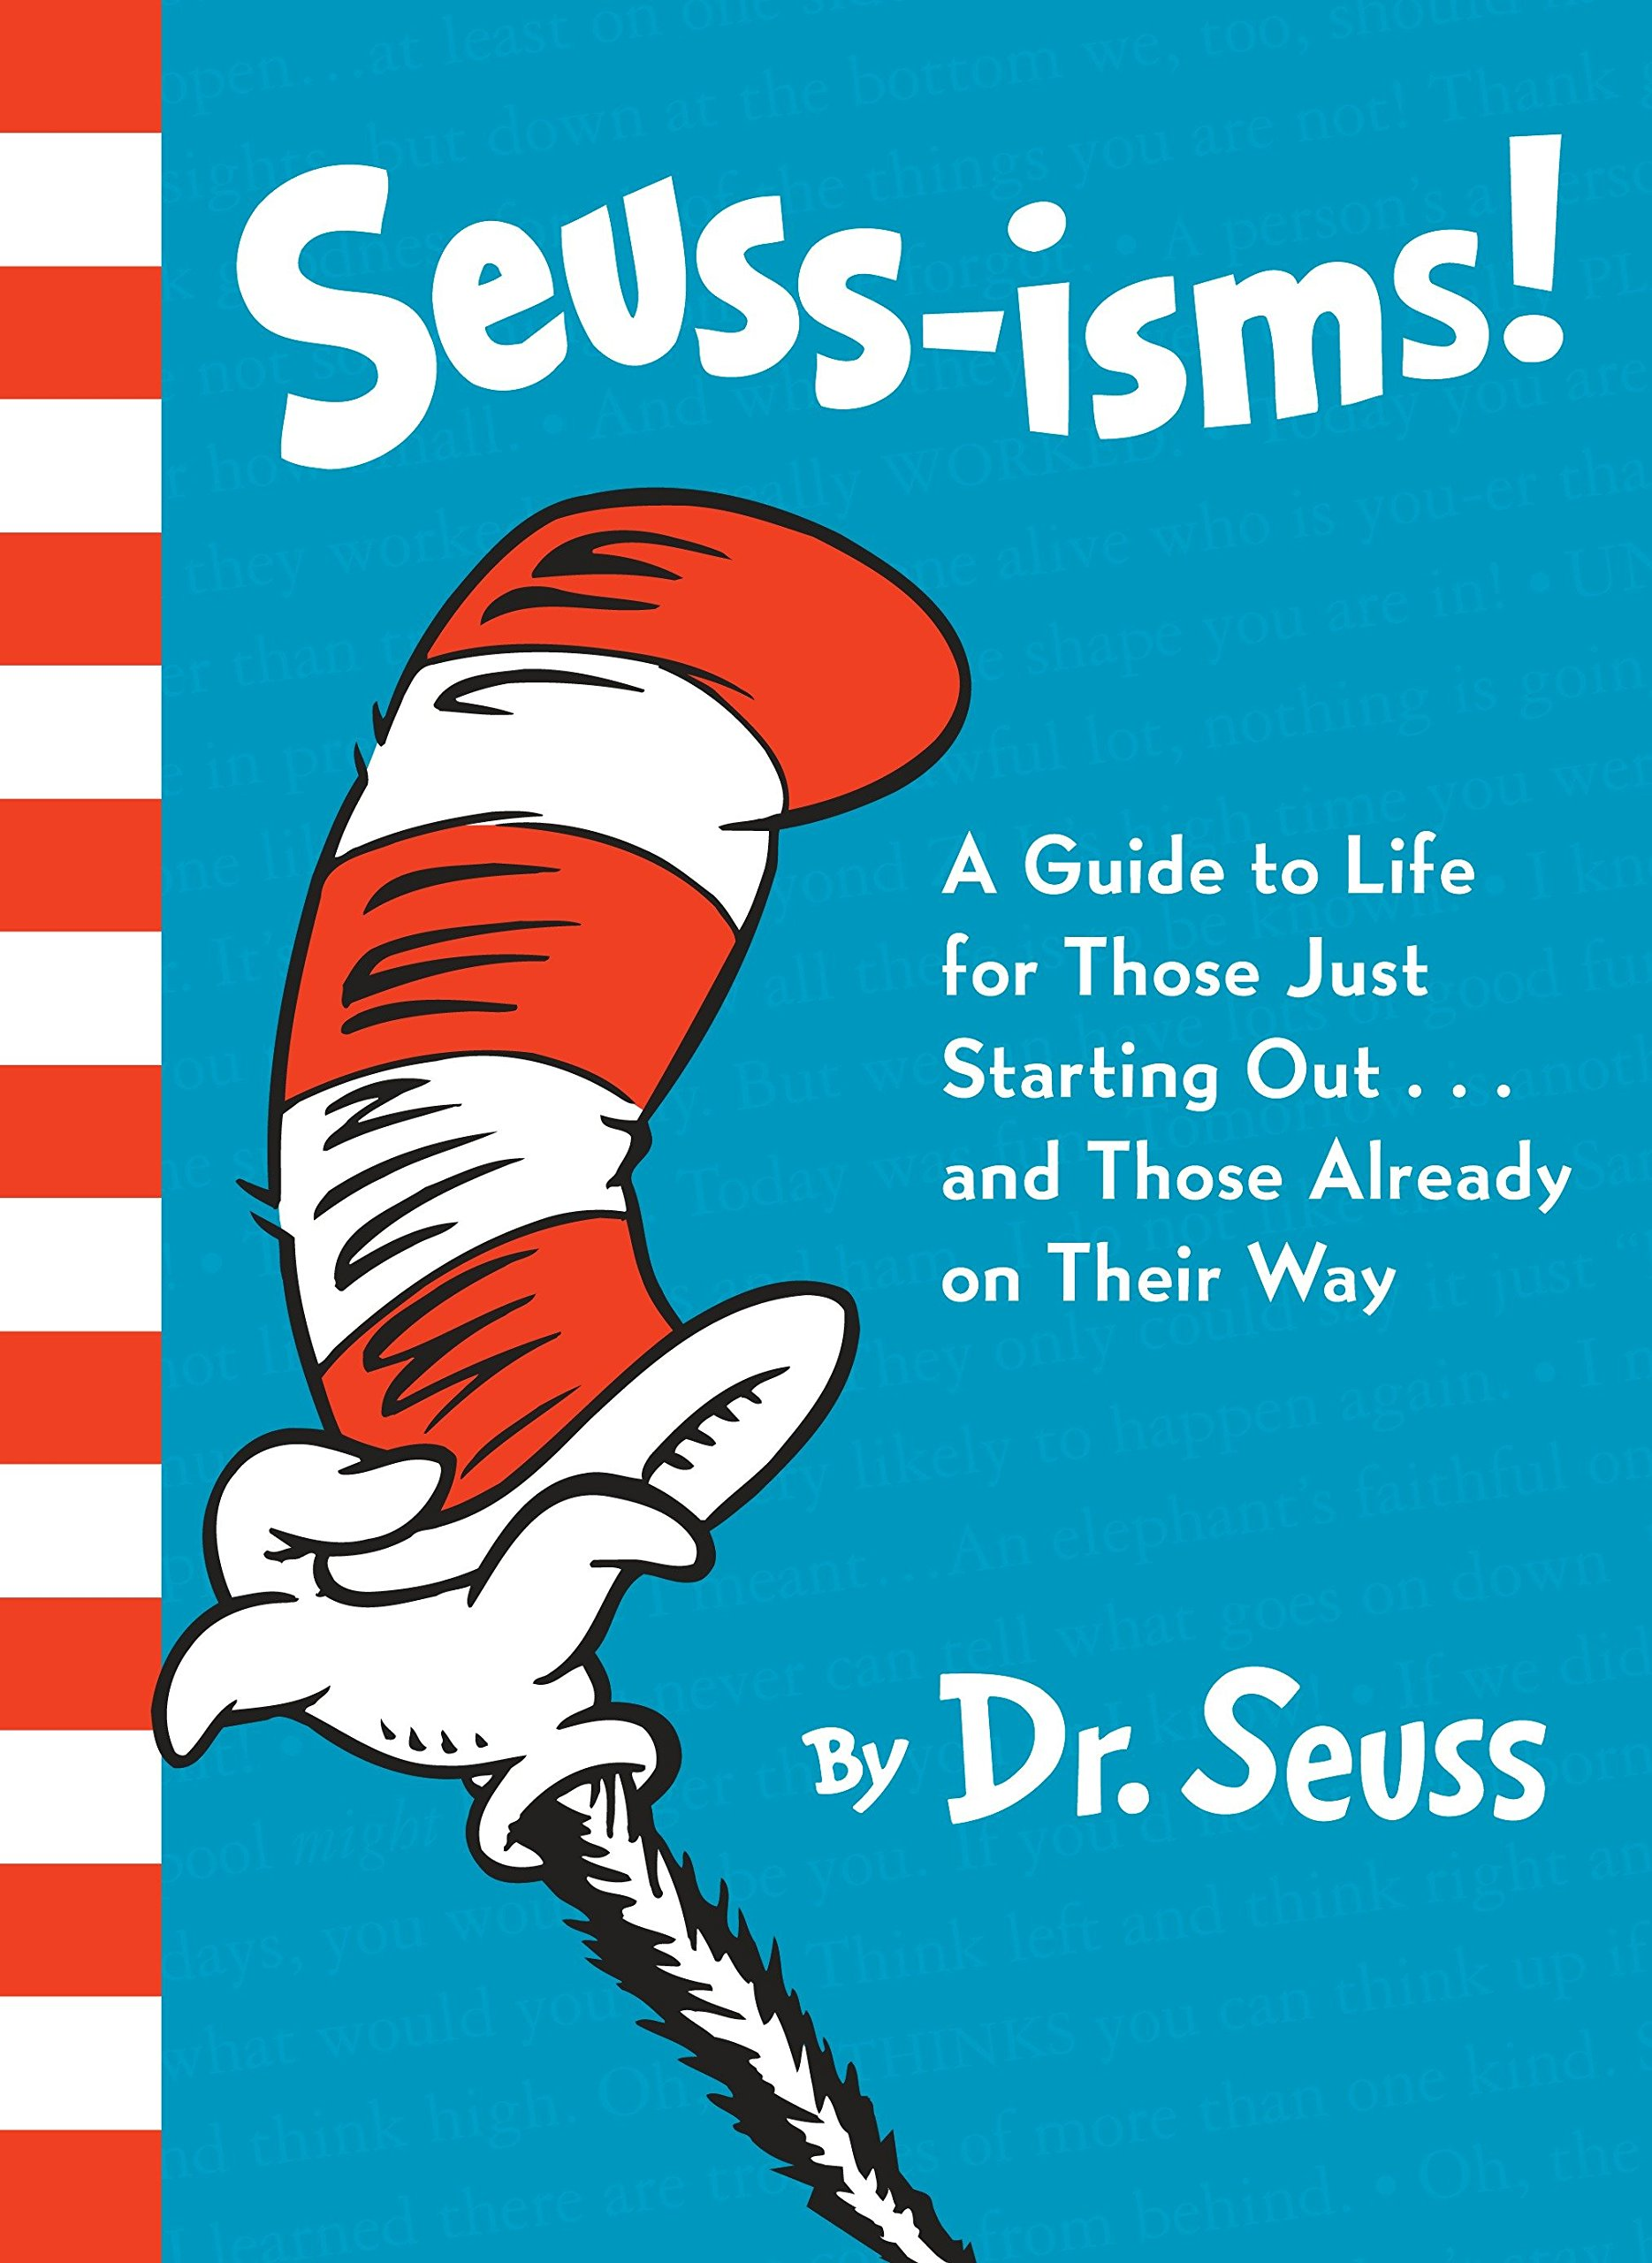 Amazon Seuss Isms A Guide To Life For Those Just Starting Out